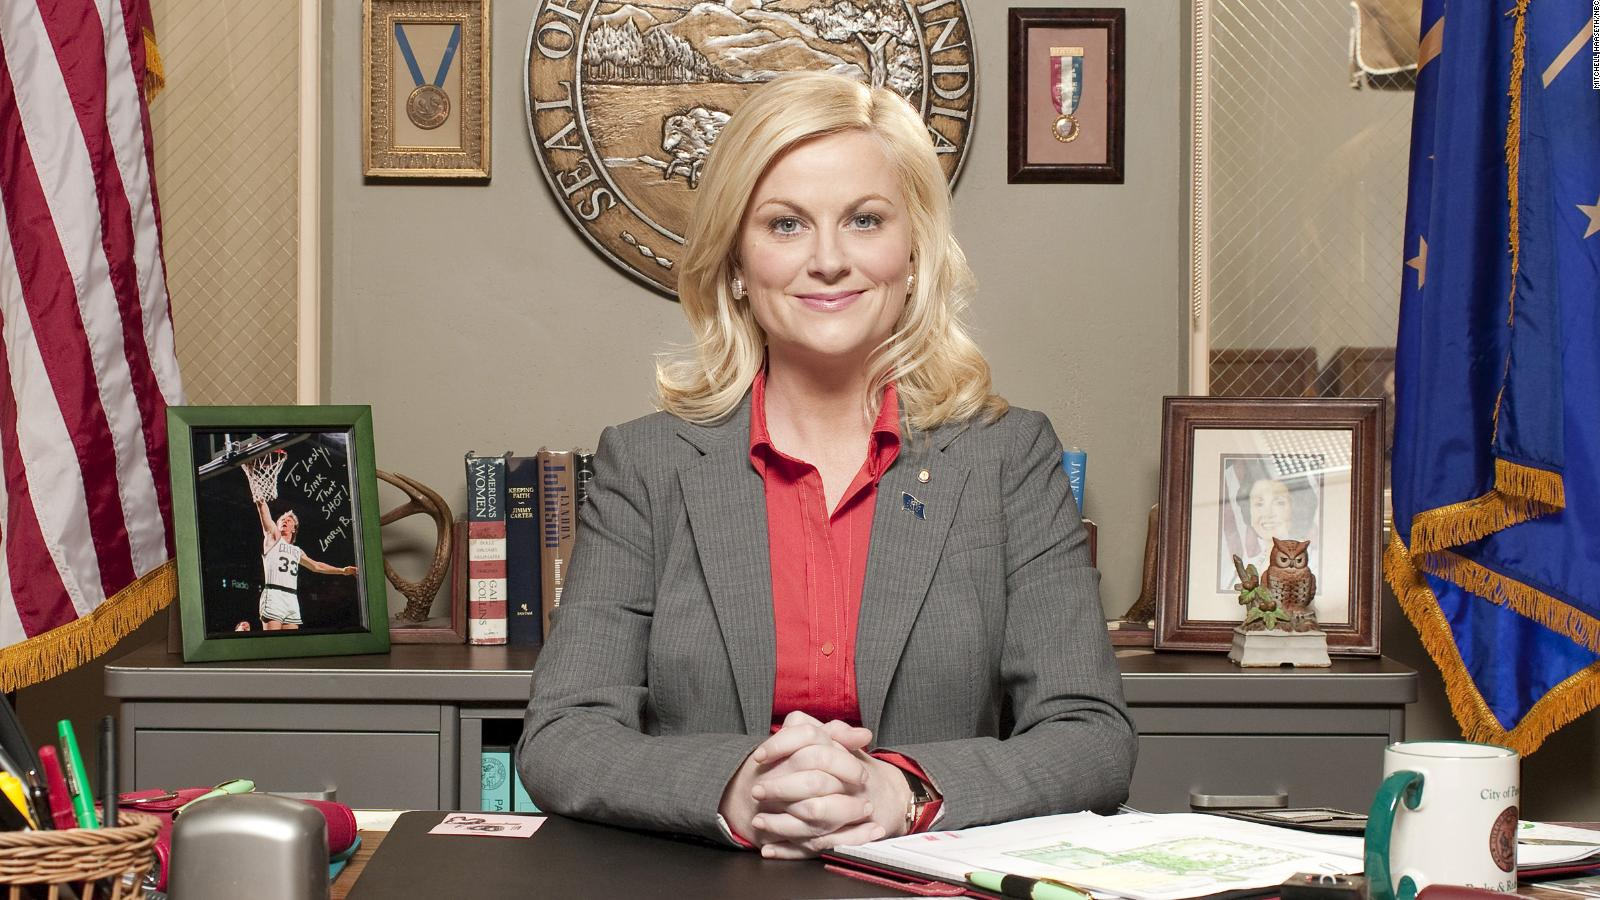 Amy Poehler is ready for a 'Parks and Recreation' reboot - CNN